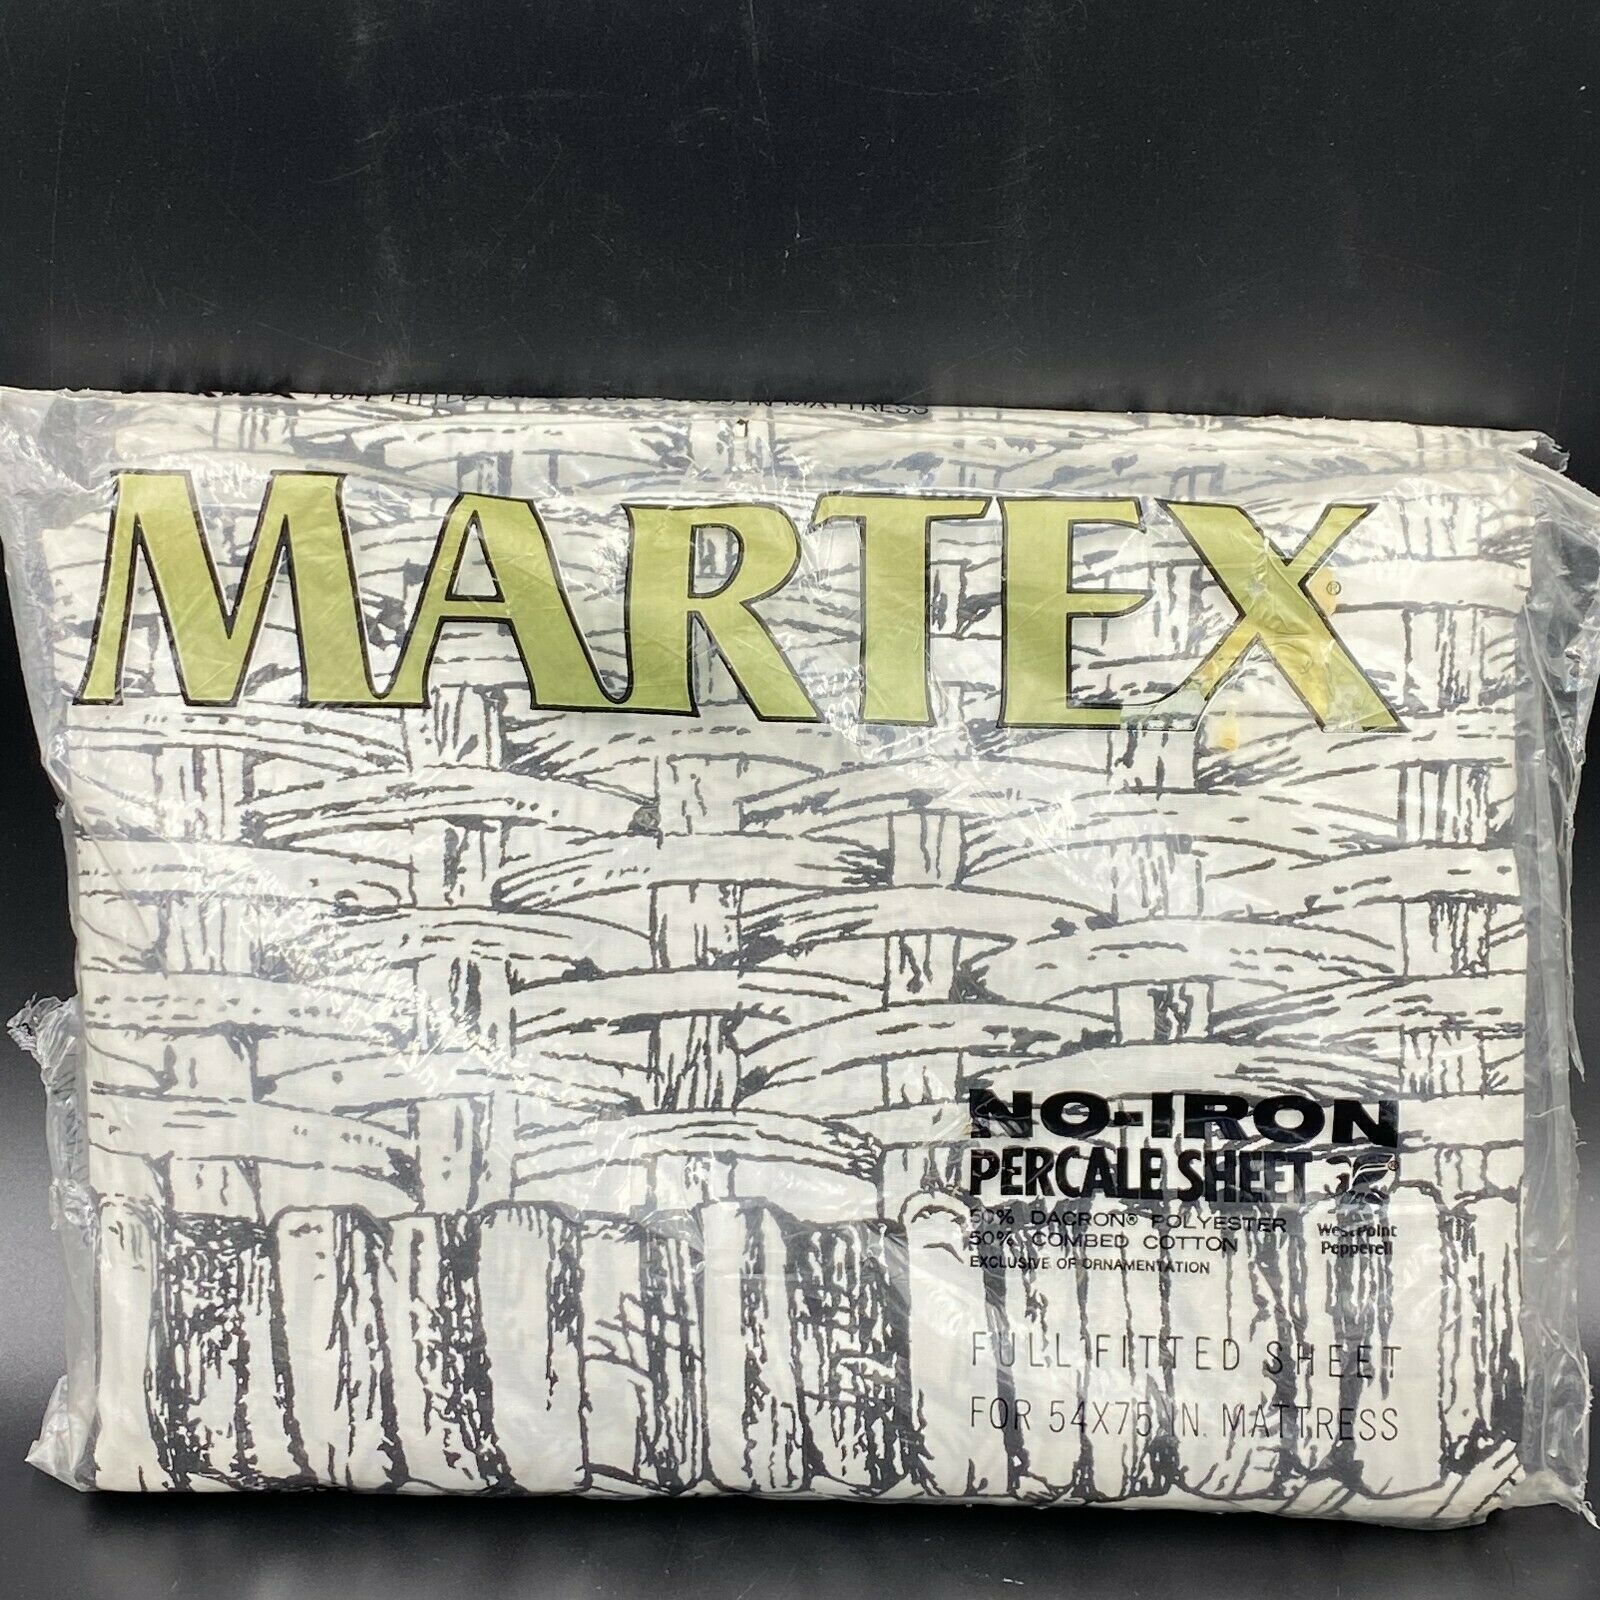 Primary image for Vintage Martex Sheet Black White Full Fitted Basketweave Basket New OPEN PKG K1